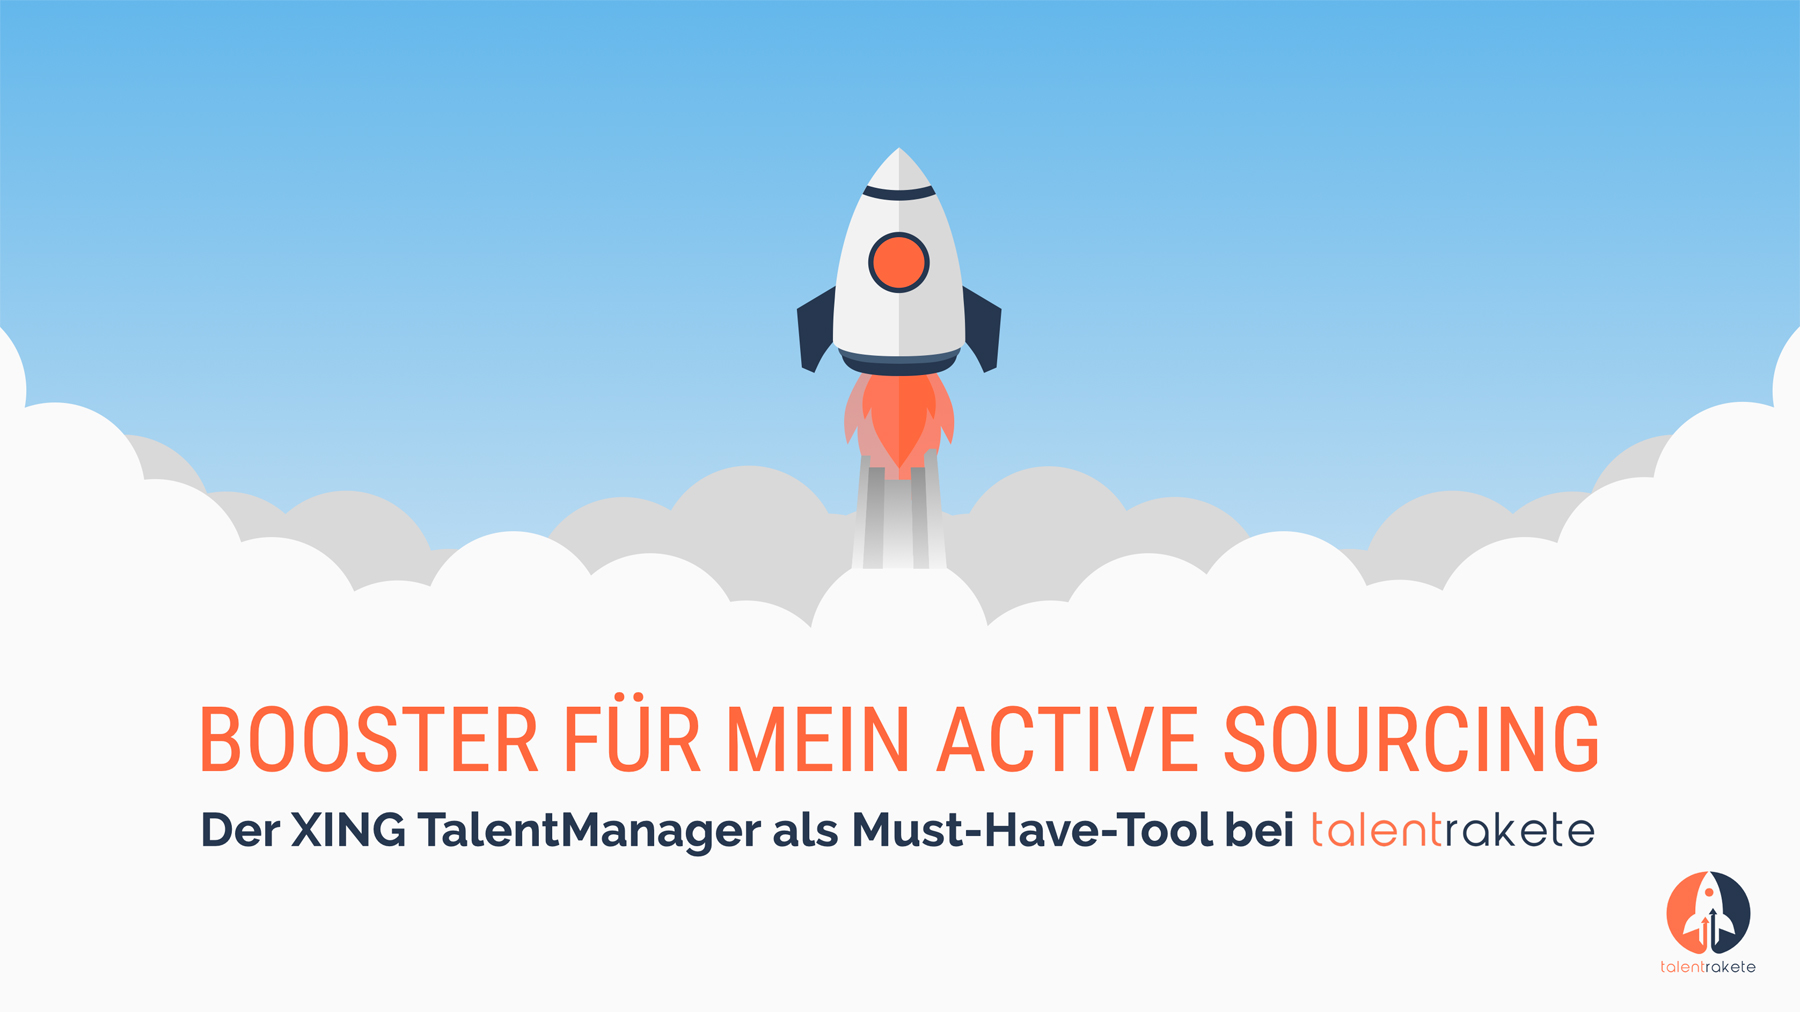 XING-TalentManager-als-Active-Sourcing-Booster